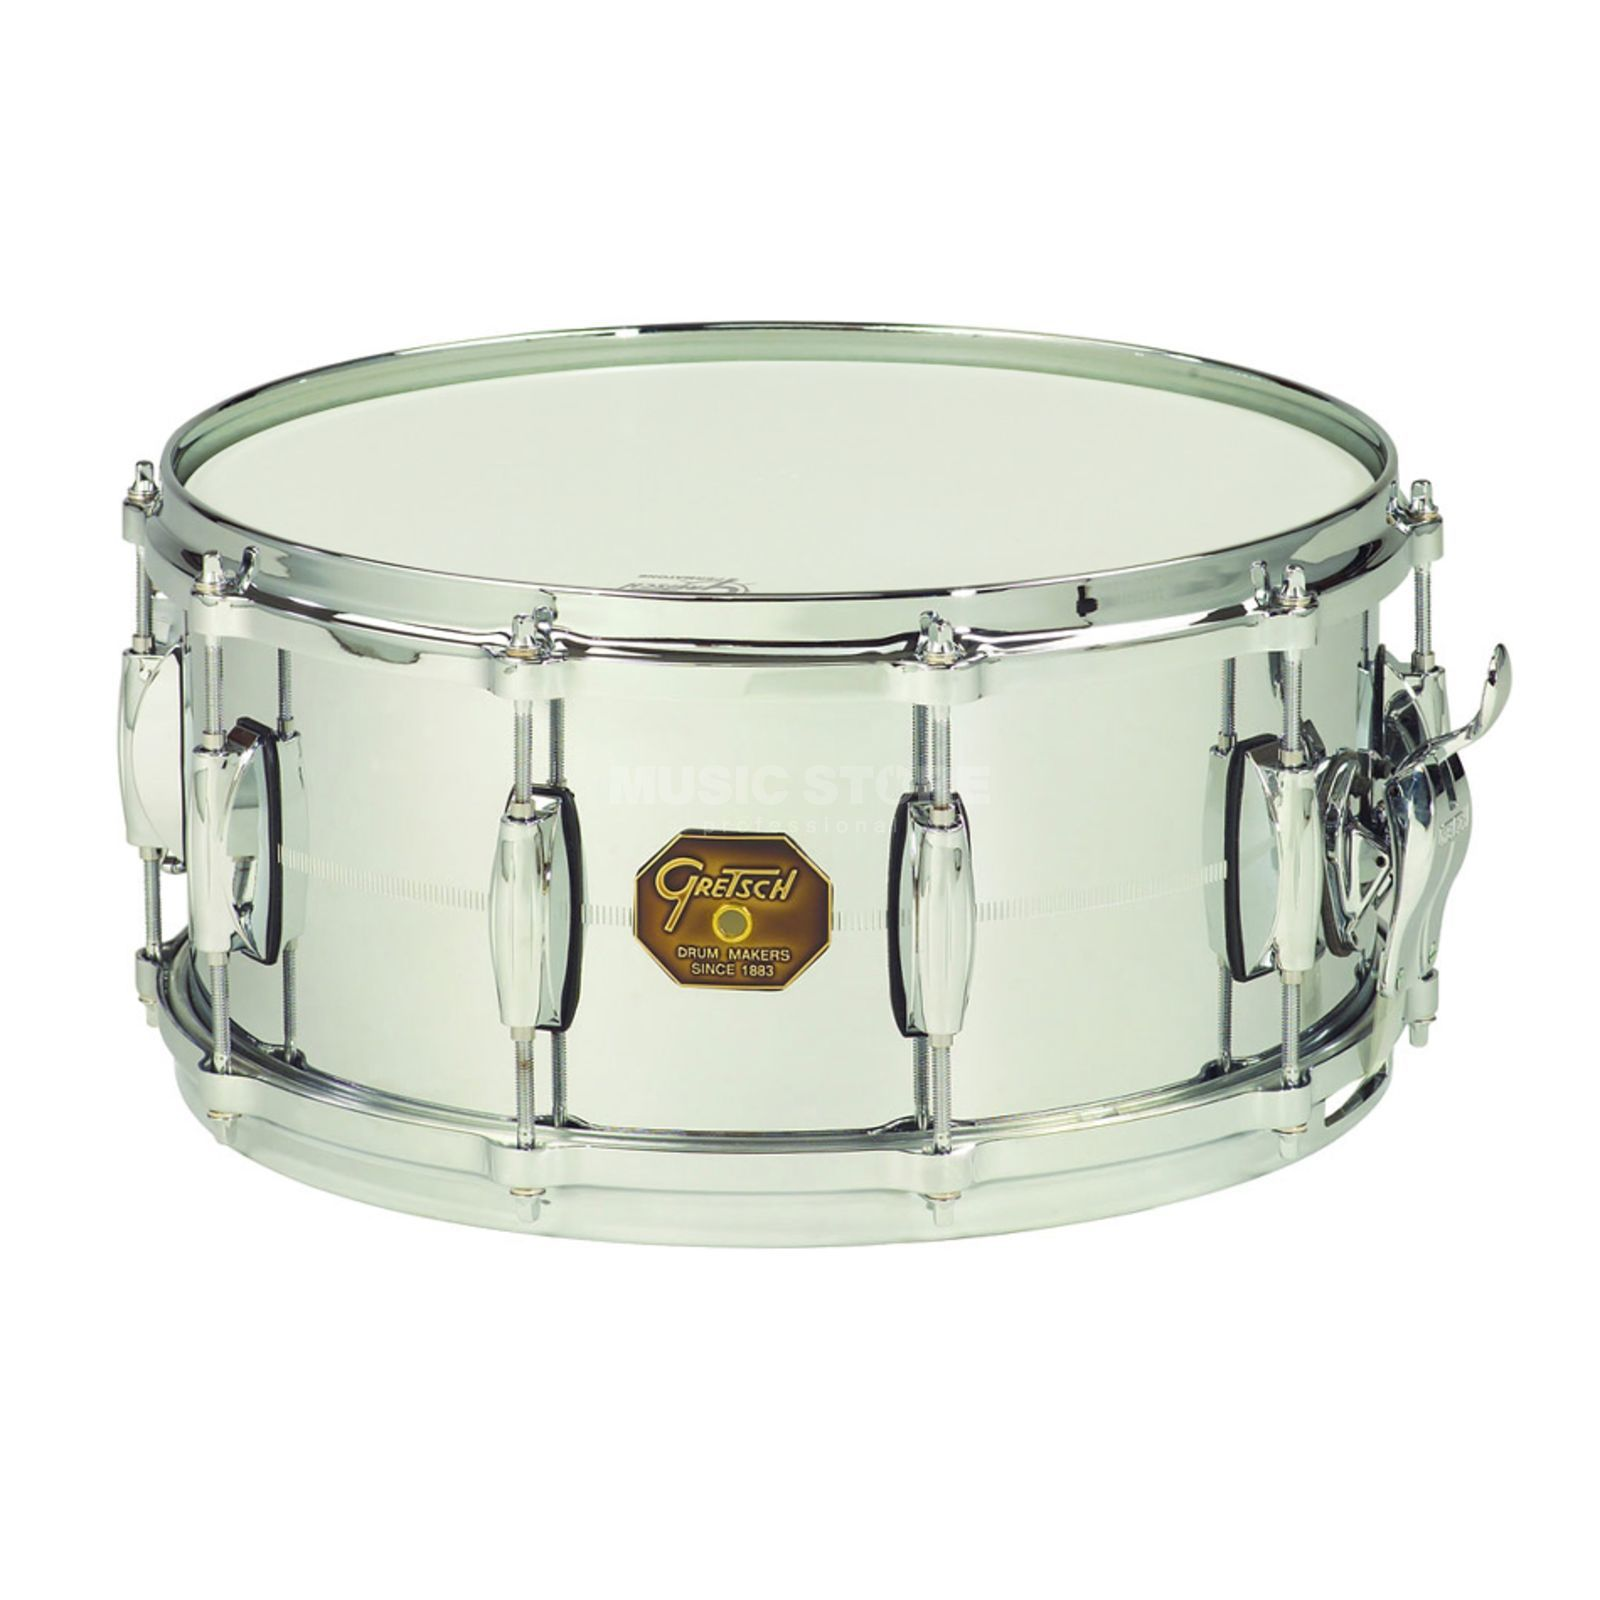 "Gretsch USA G4000 Snare G4164, 14""x6.5"", Chrome over Brass Produktbillede"